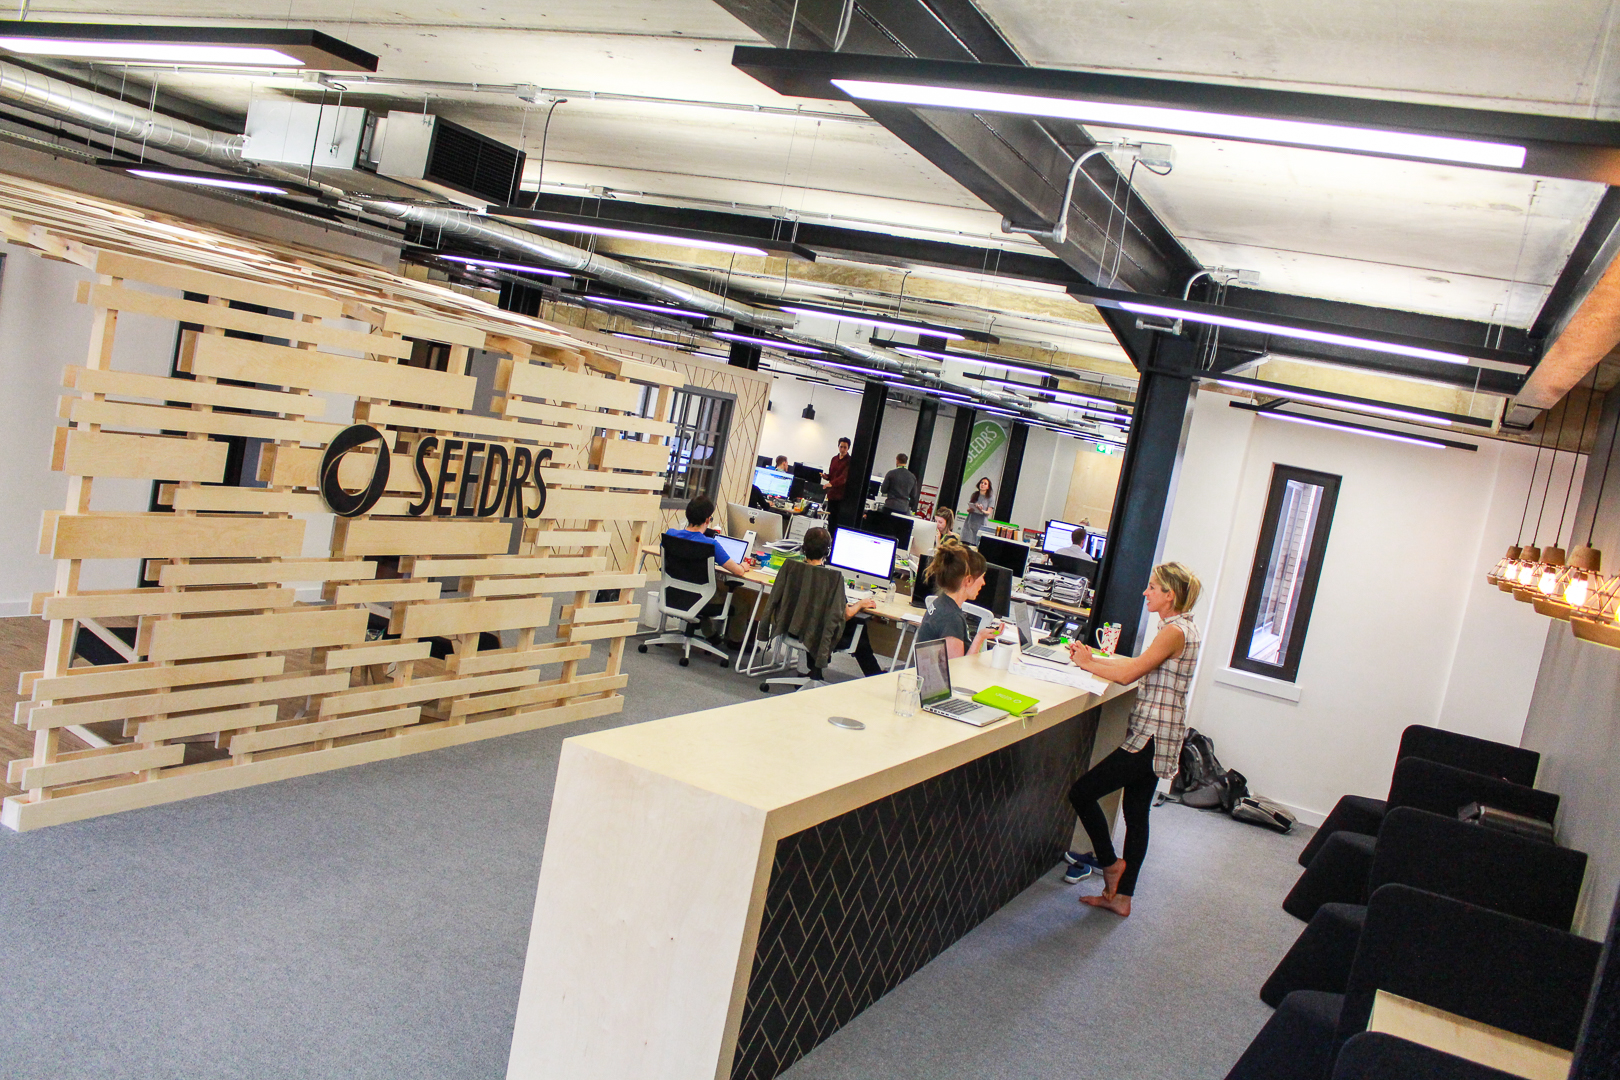 Seedrs Interior by Liqui Group